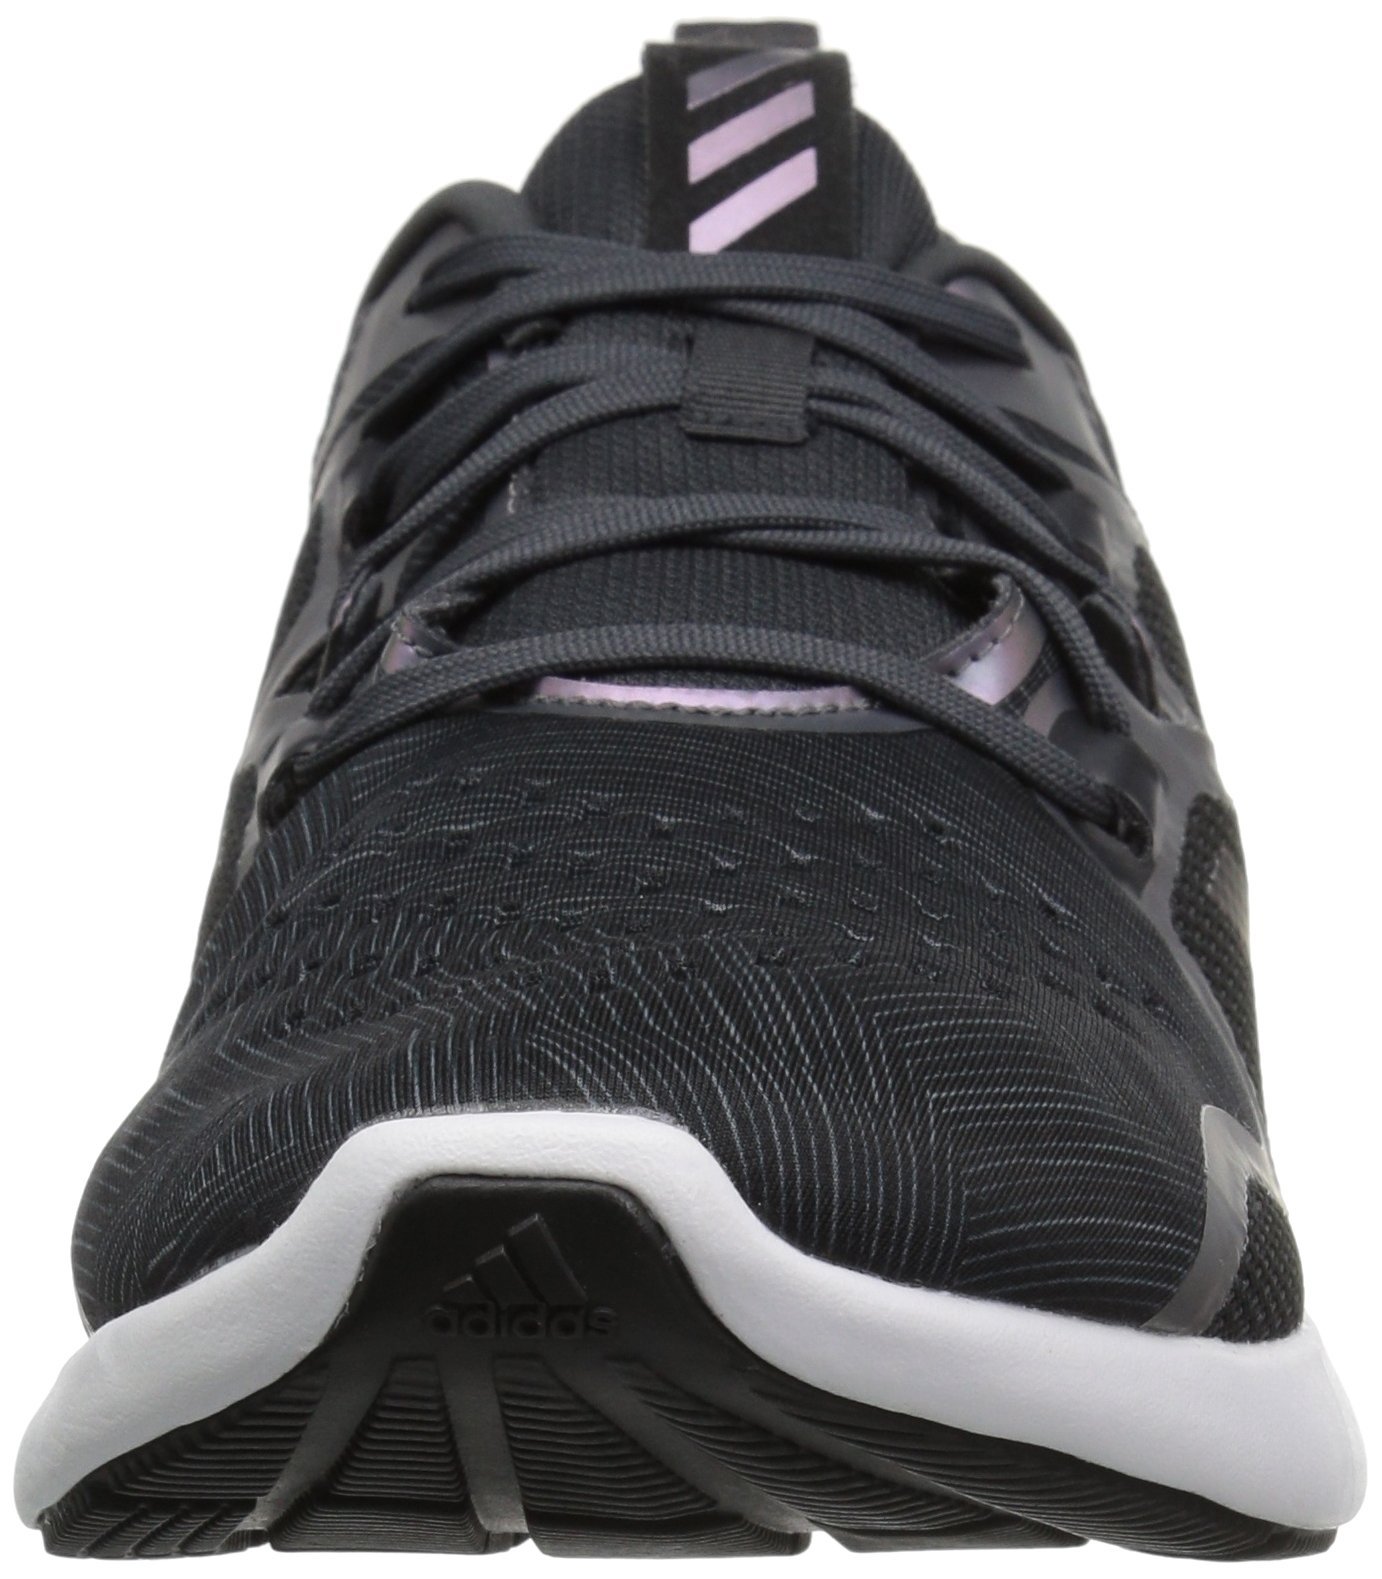 adidas Women's EdgeBounce Running Shoe Carbon/Black/Night Metallic 5.5 M US by adidas (Image #4)